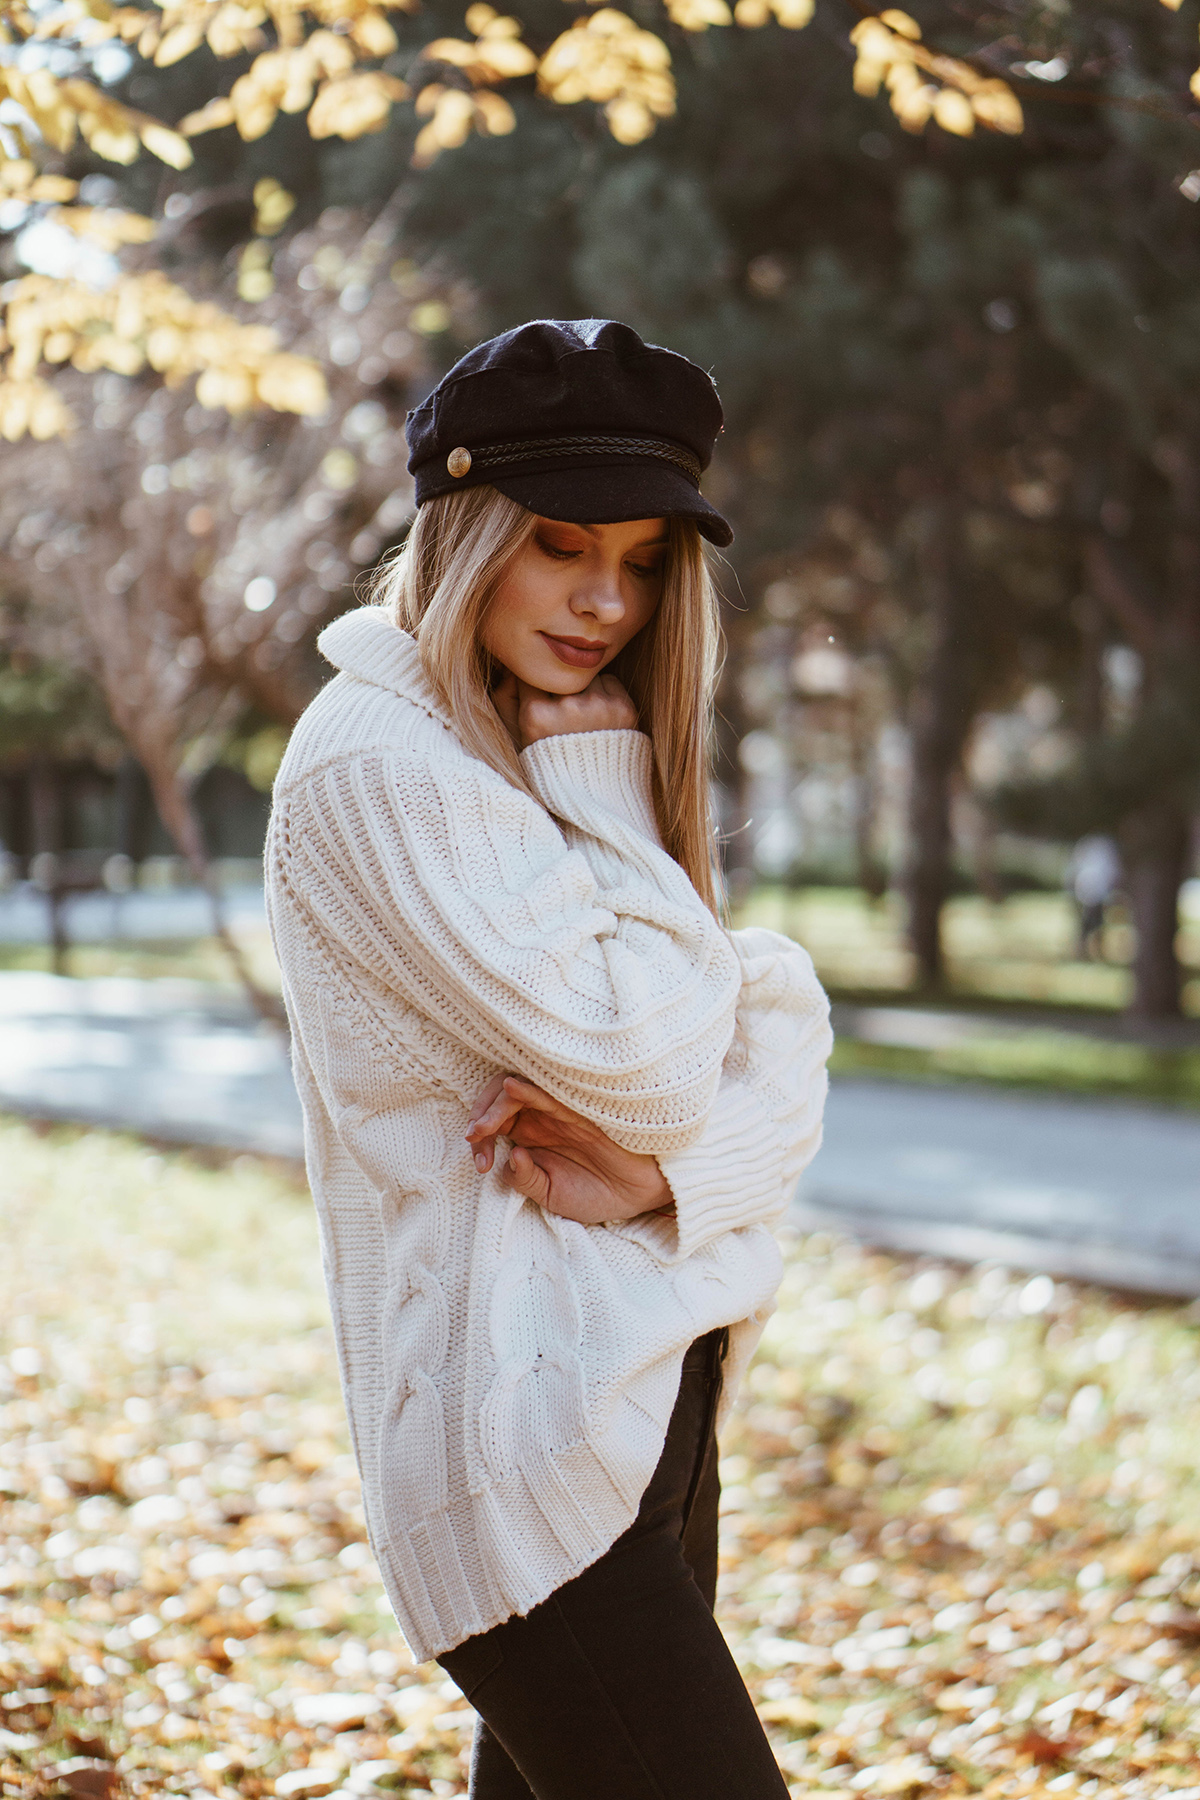 Bakerboy / Newsboy There are 36 products. The newsboy cap is a casual-wear cap similar in style to the flat cap. Sometimes also referred to as the: Baker Boy, Bandit Cap, Eight Piece Cap, Eight Panel, Cabbie, Jay Gatsby (from The Great Gatsby), Fisherman's Cap or Pageboy.